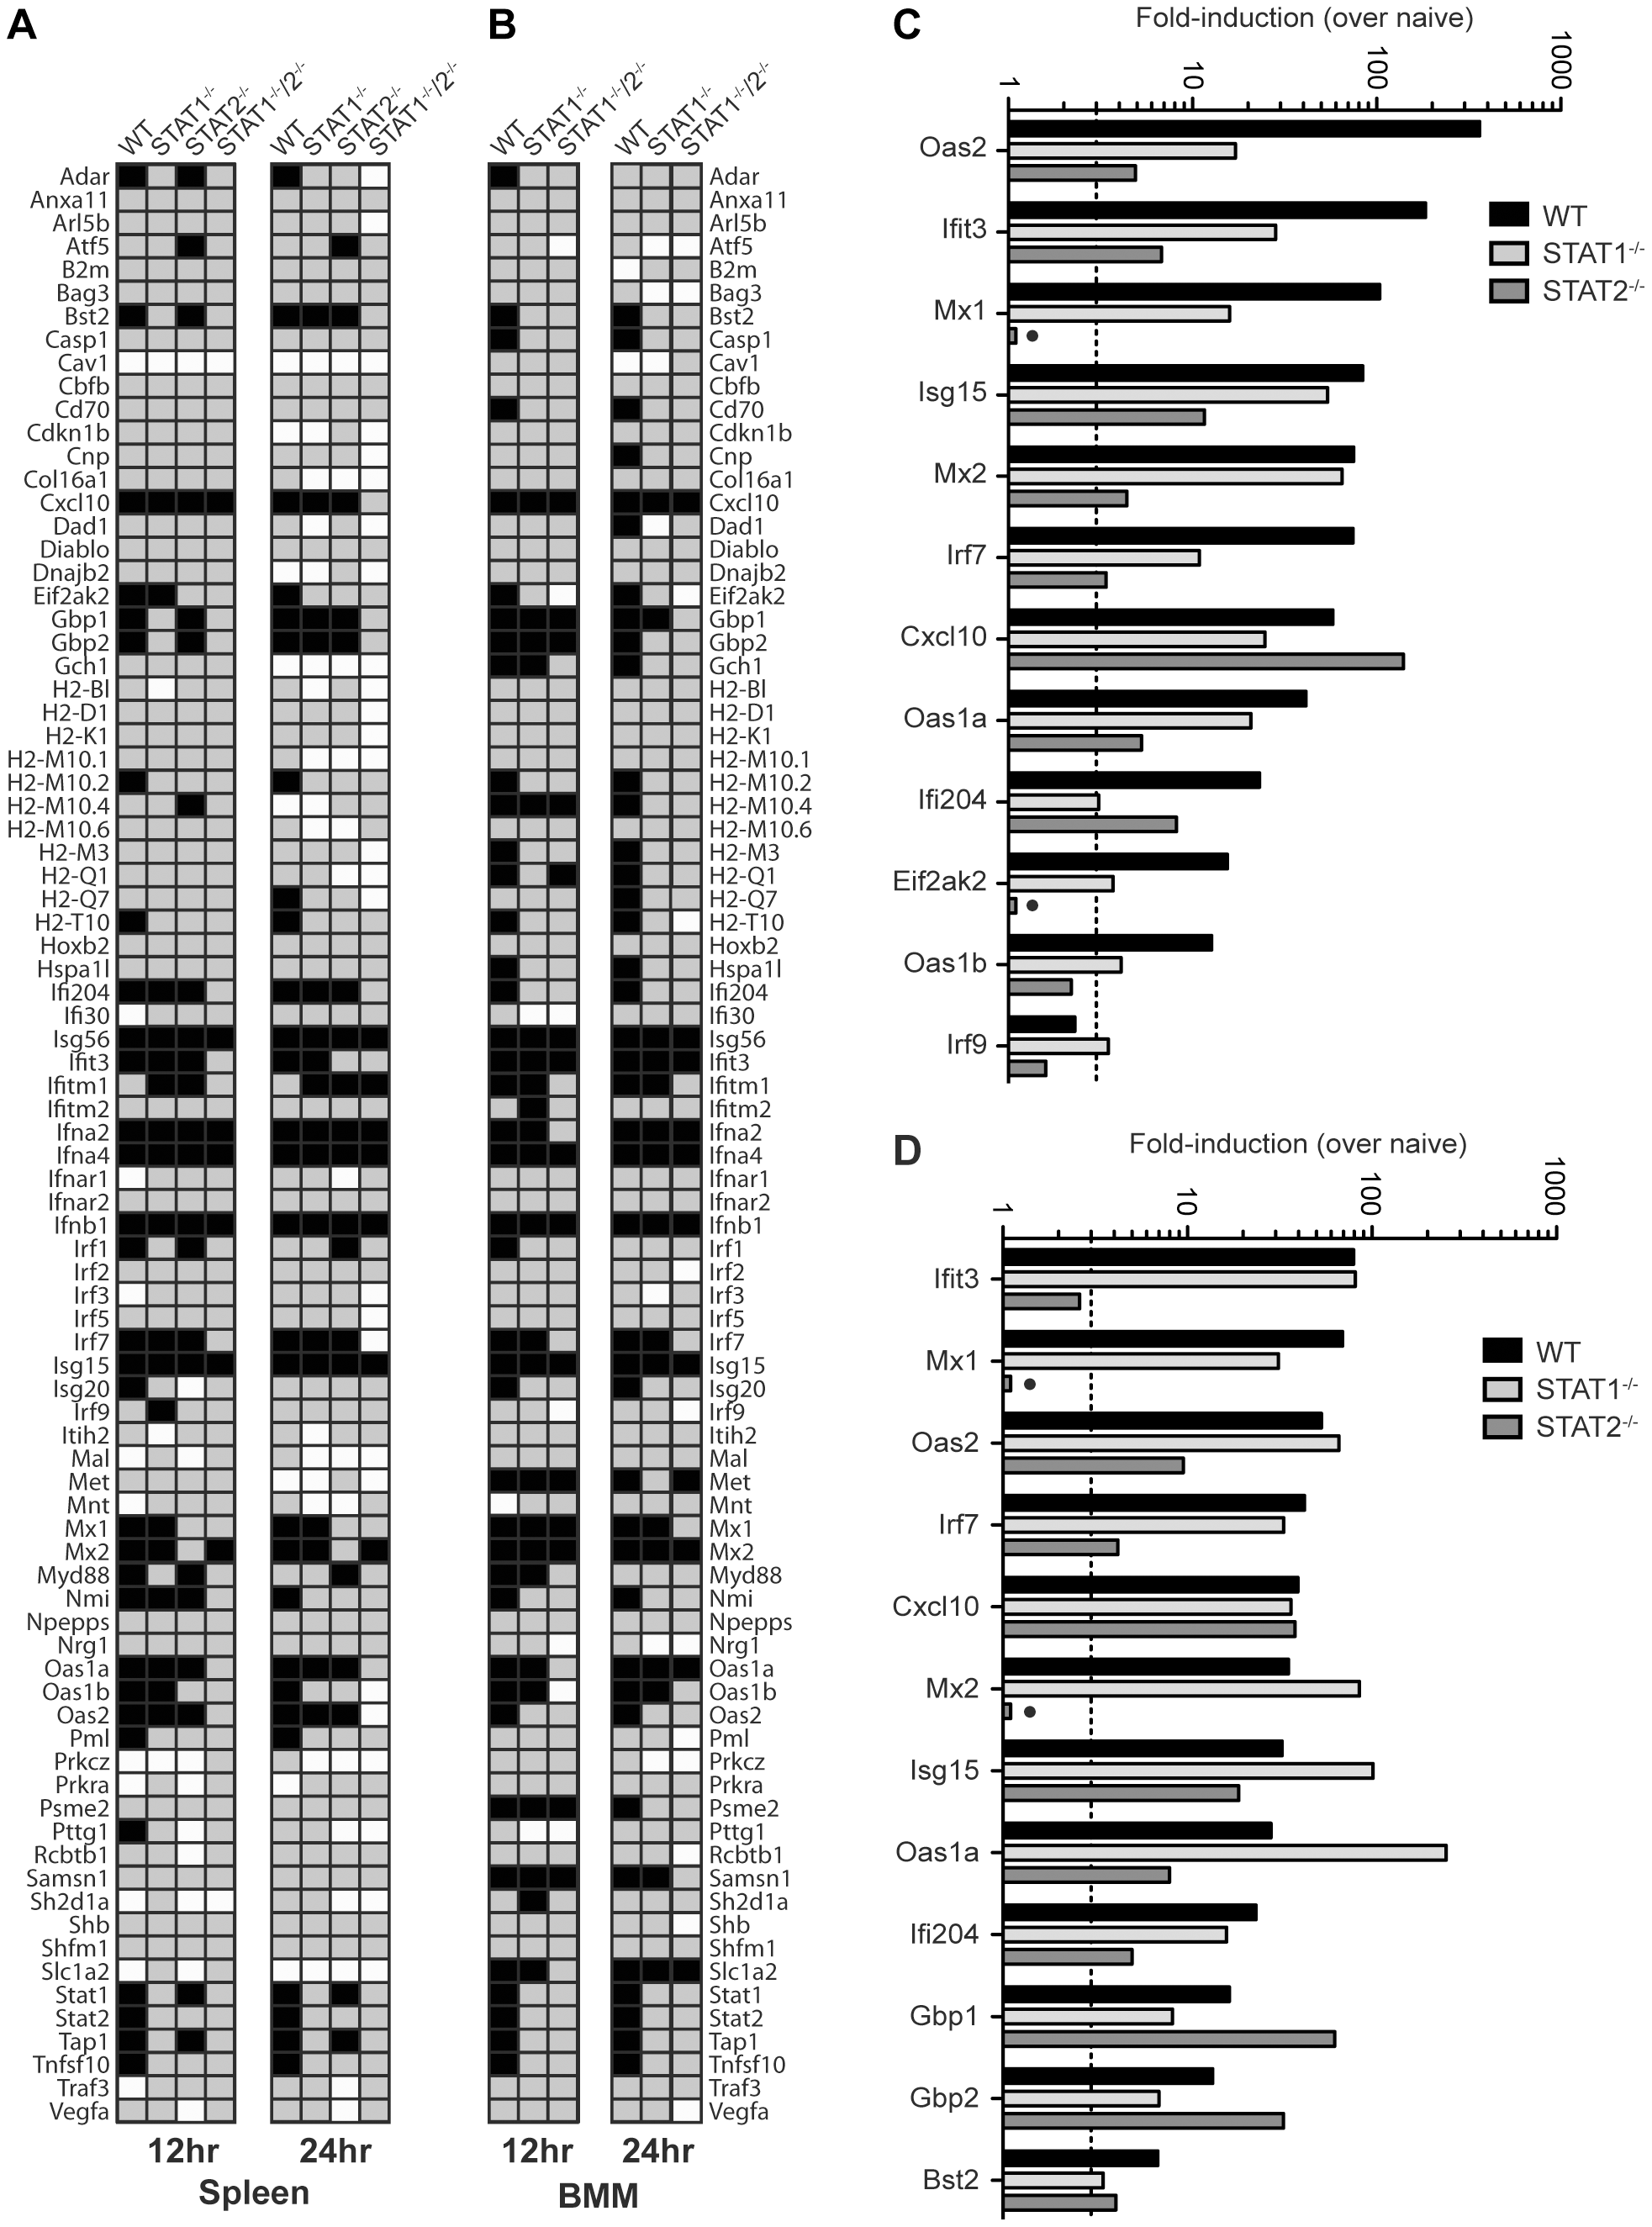 Comparison of ISG Induction in DENV-infected mice.